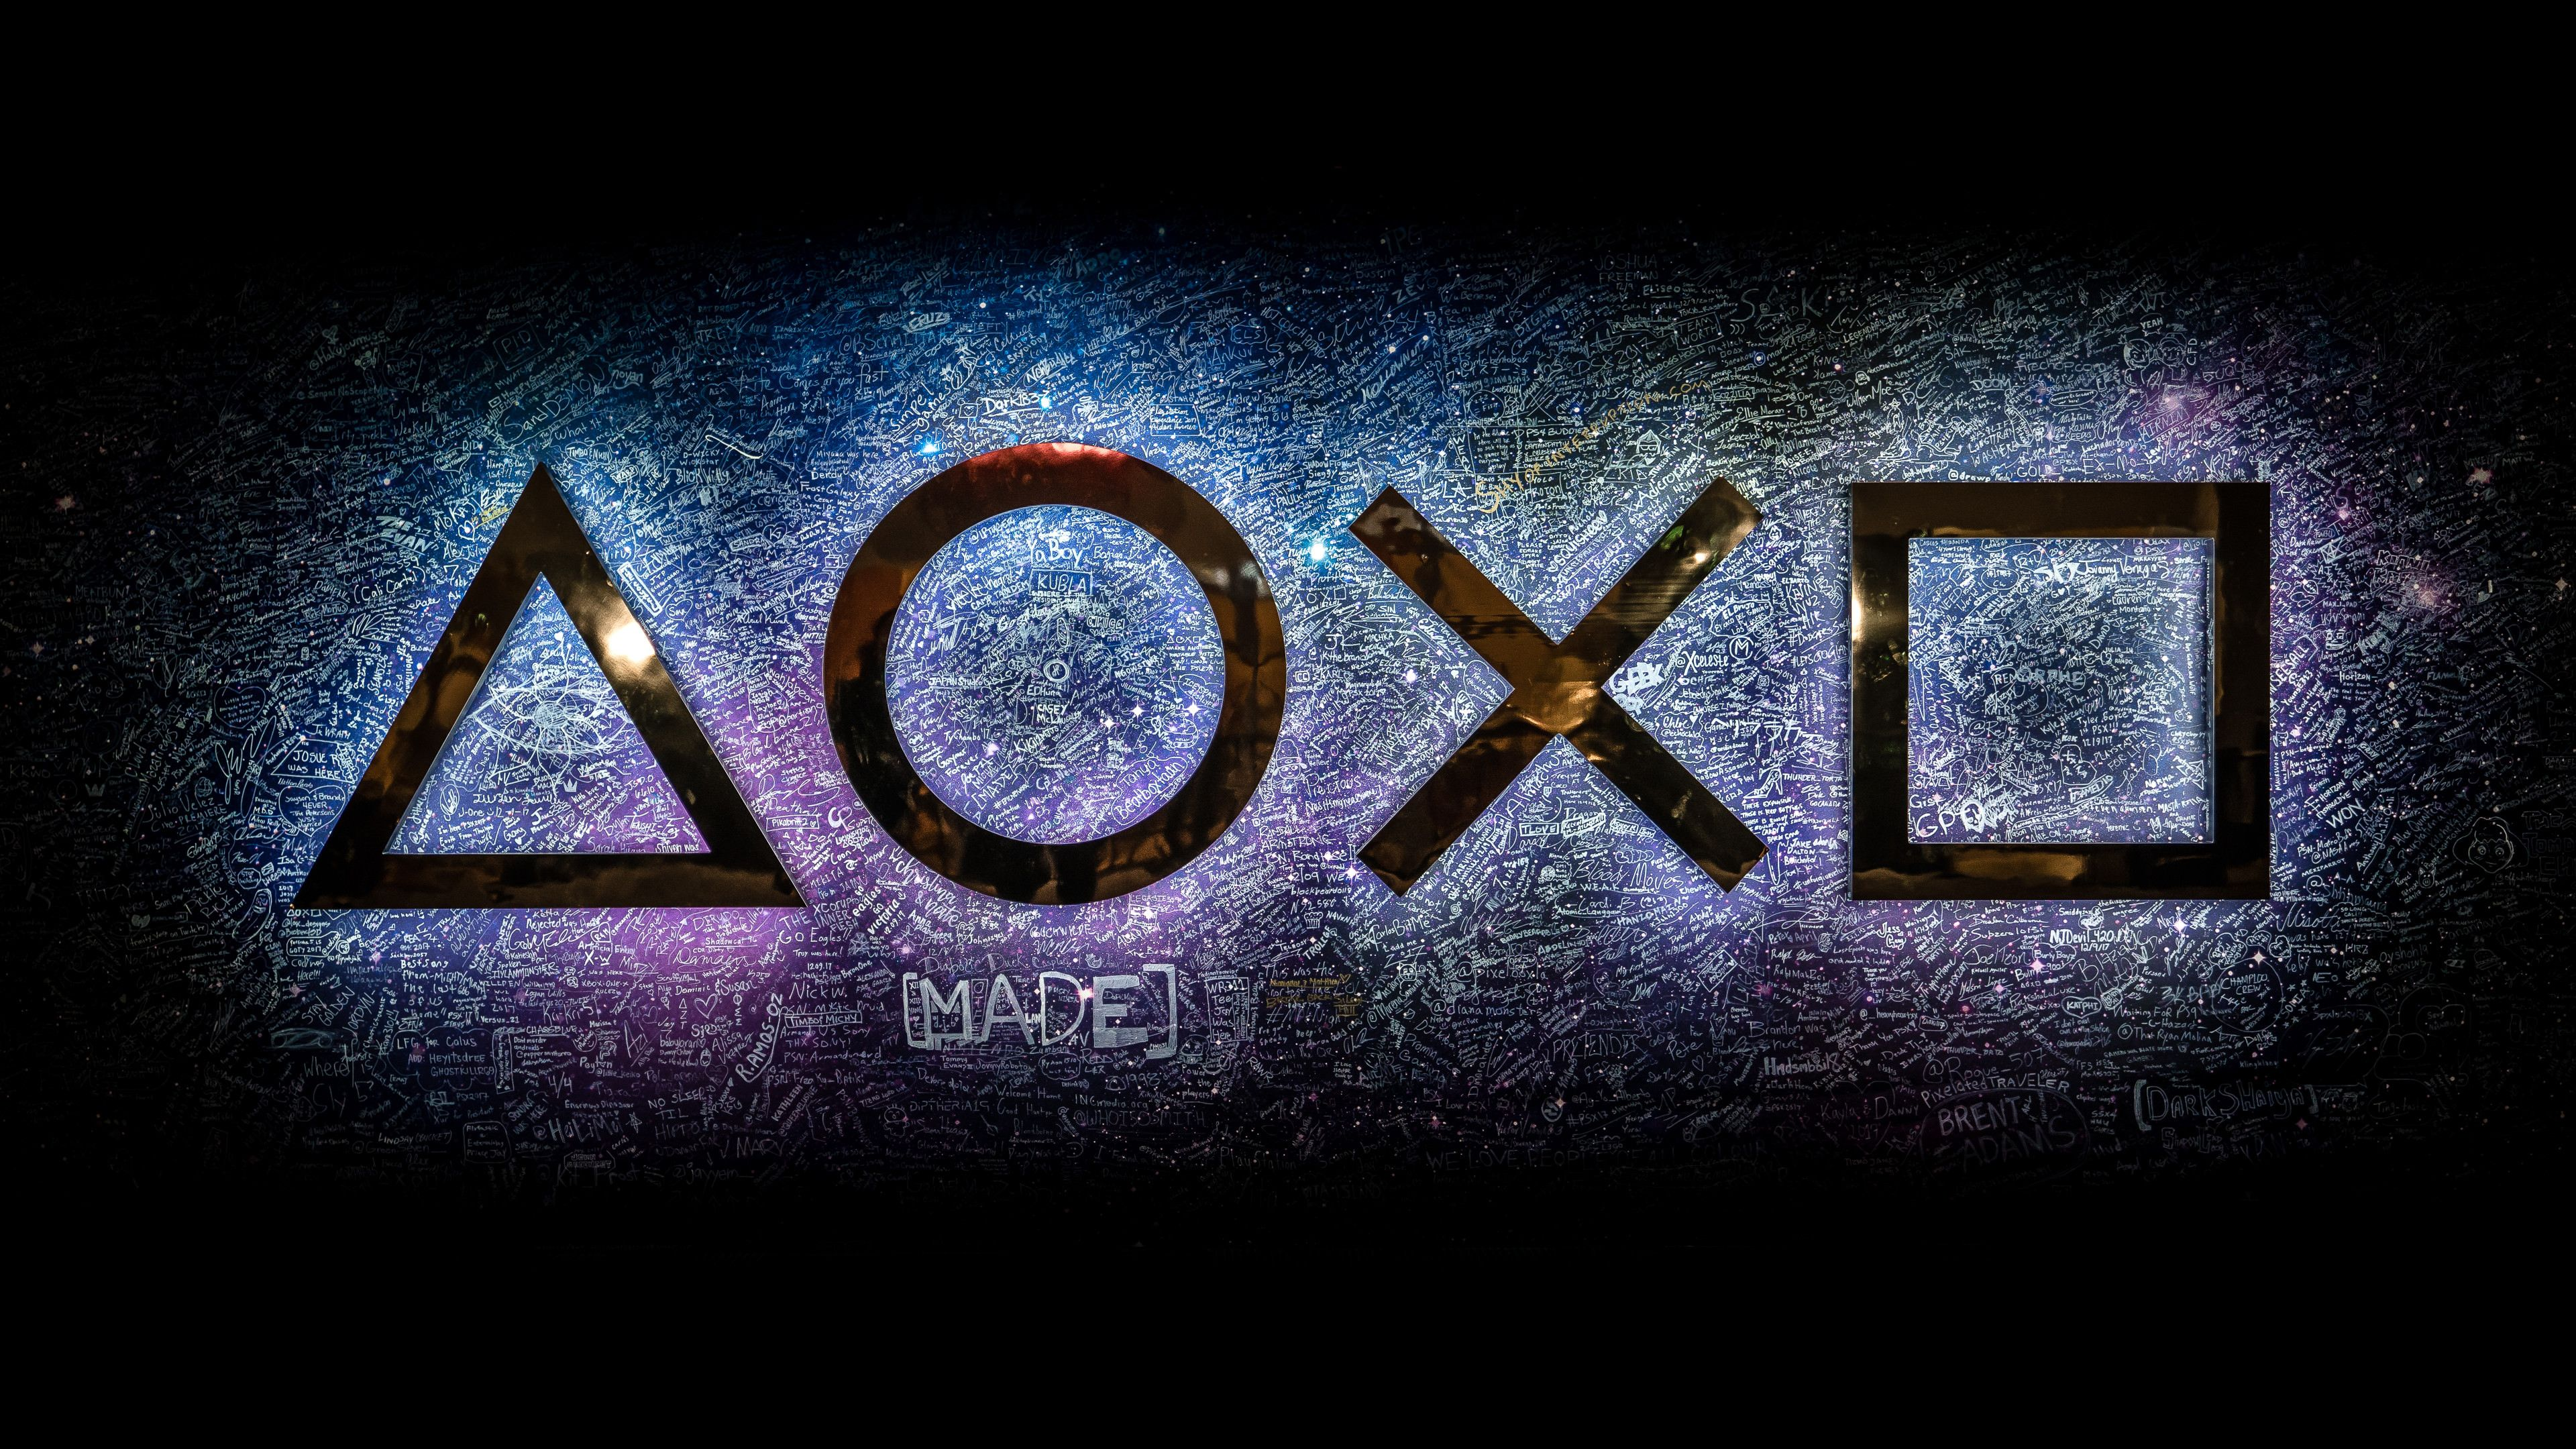 Pin by Aaron Viles on PlayStation Game wallpaper iphone